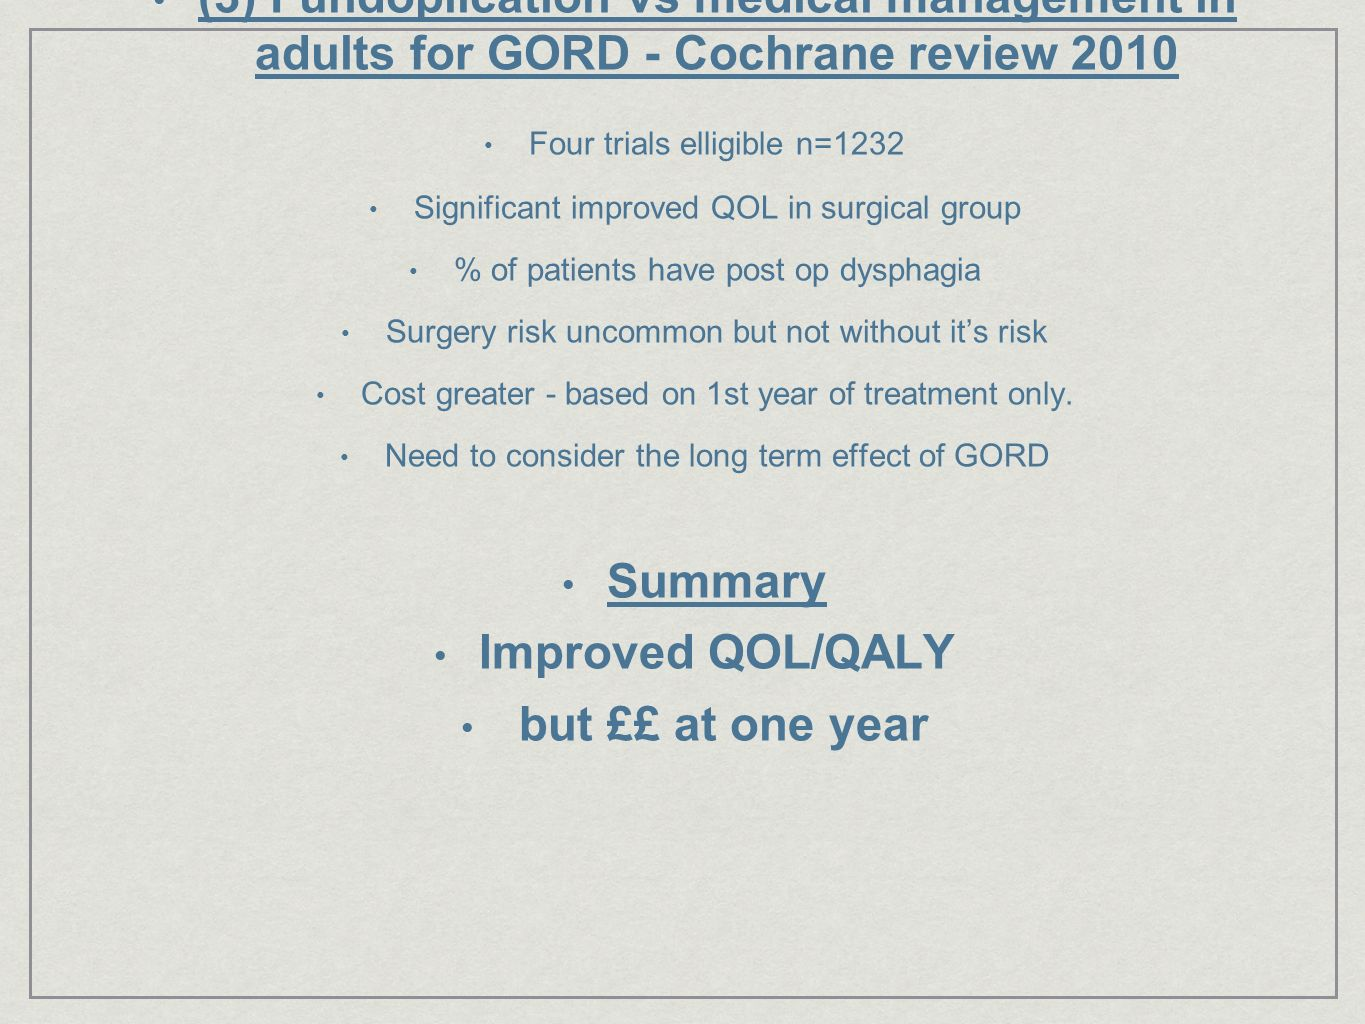 (3) Fundoplication vs medical management in adults for GORD - Cochrane review 2010 Four trials elligible n=1232 Significant improved QOL in surgical g